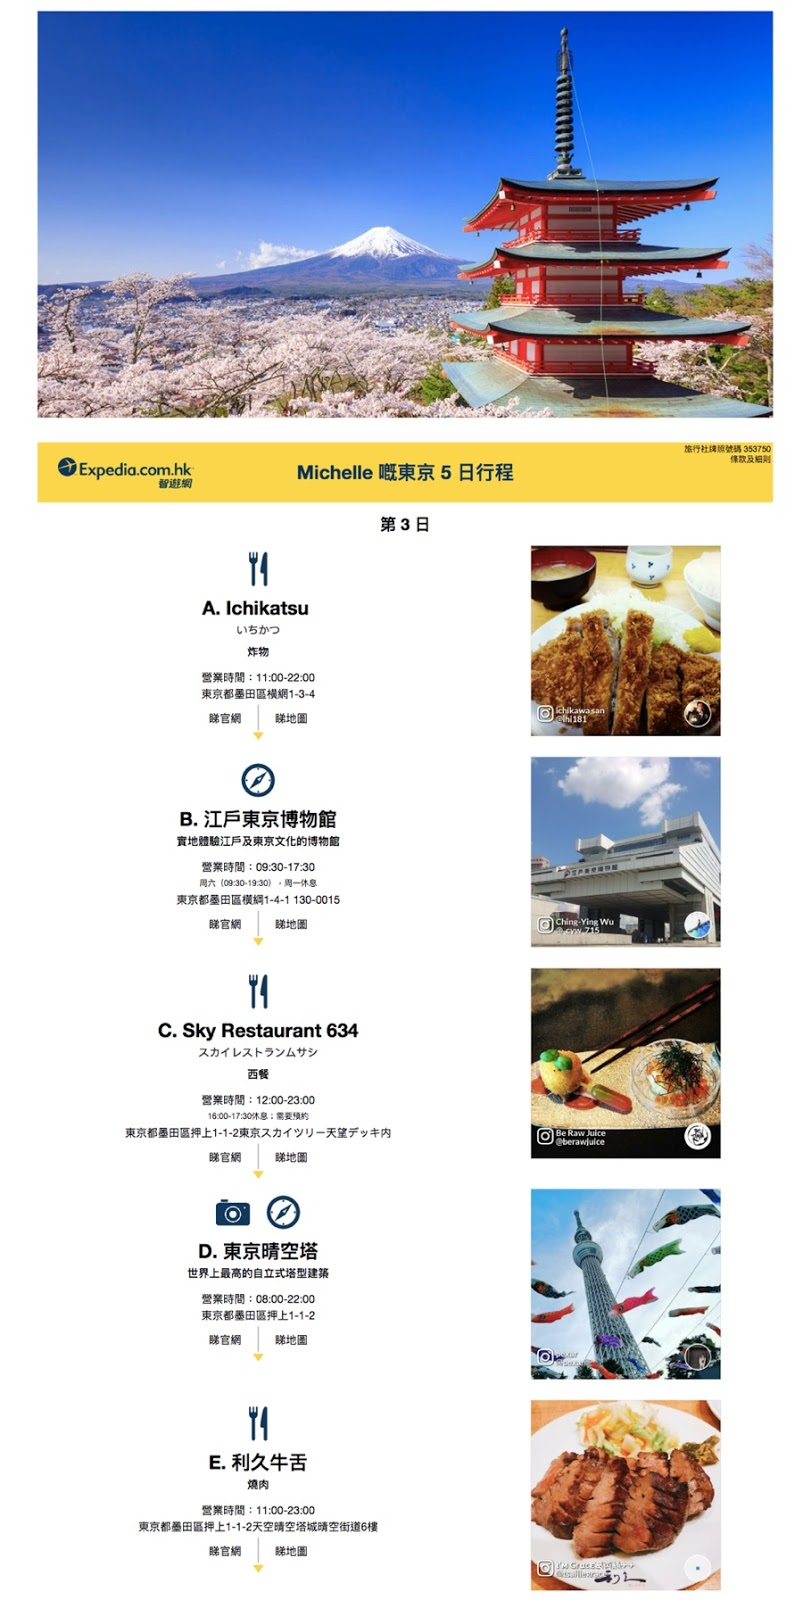 Expedia uses user-generated content in their emails to encourage travel.